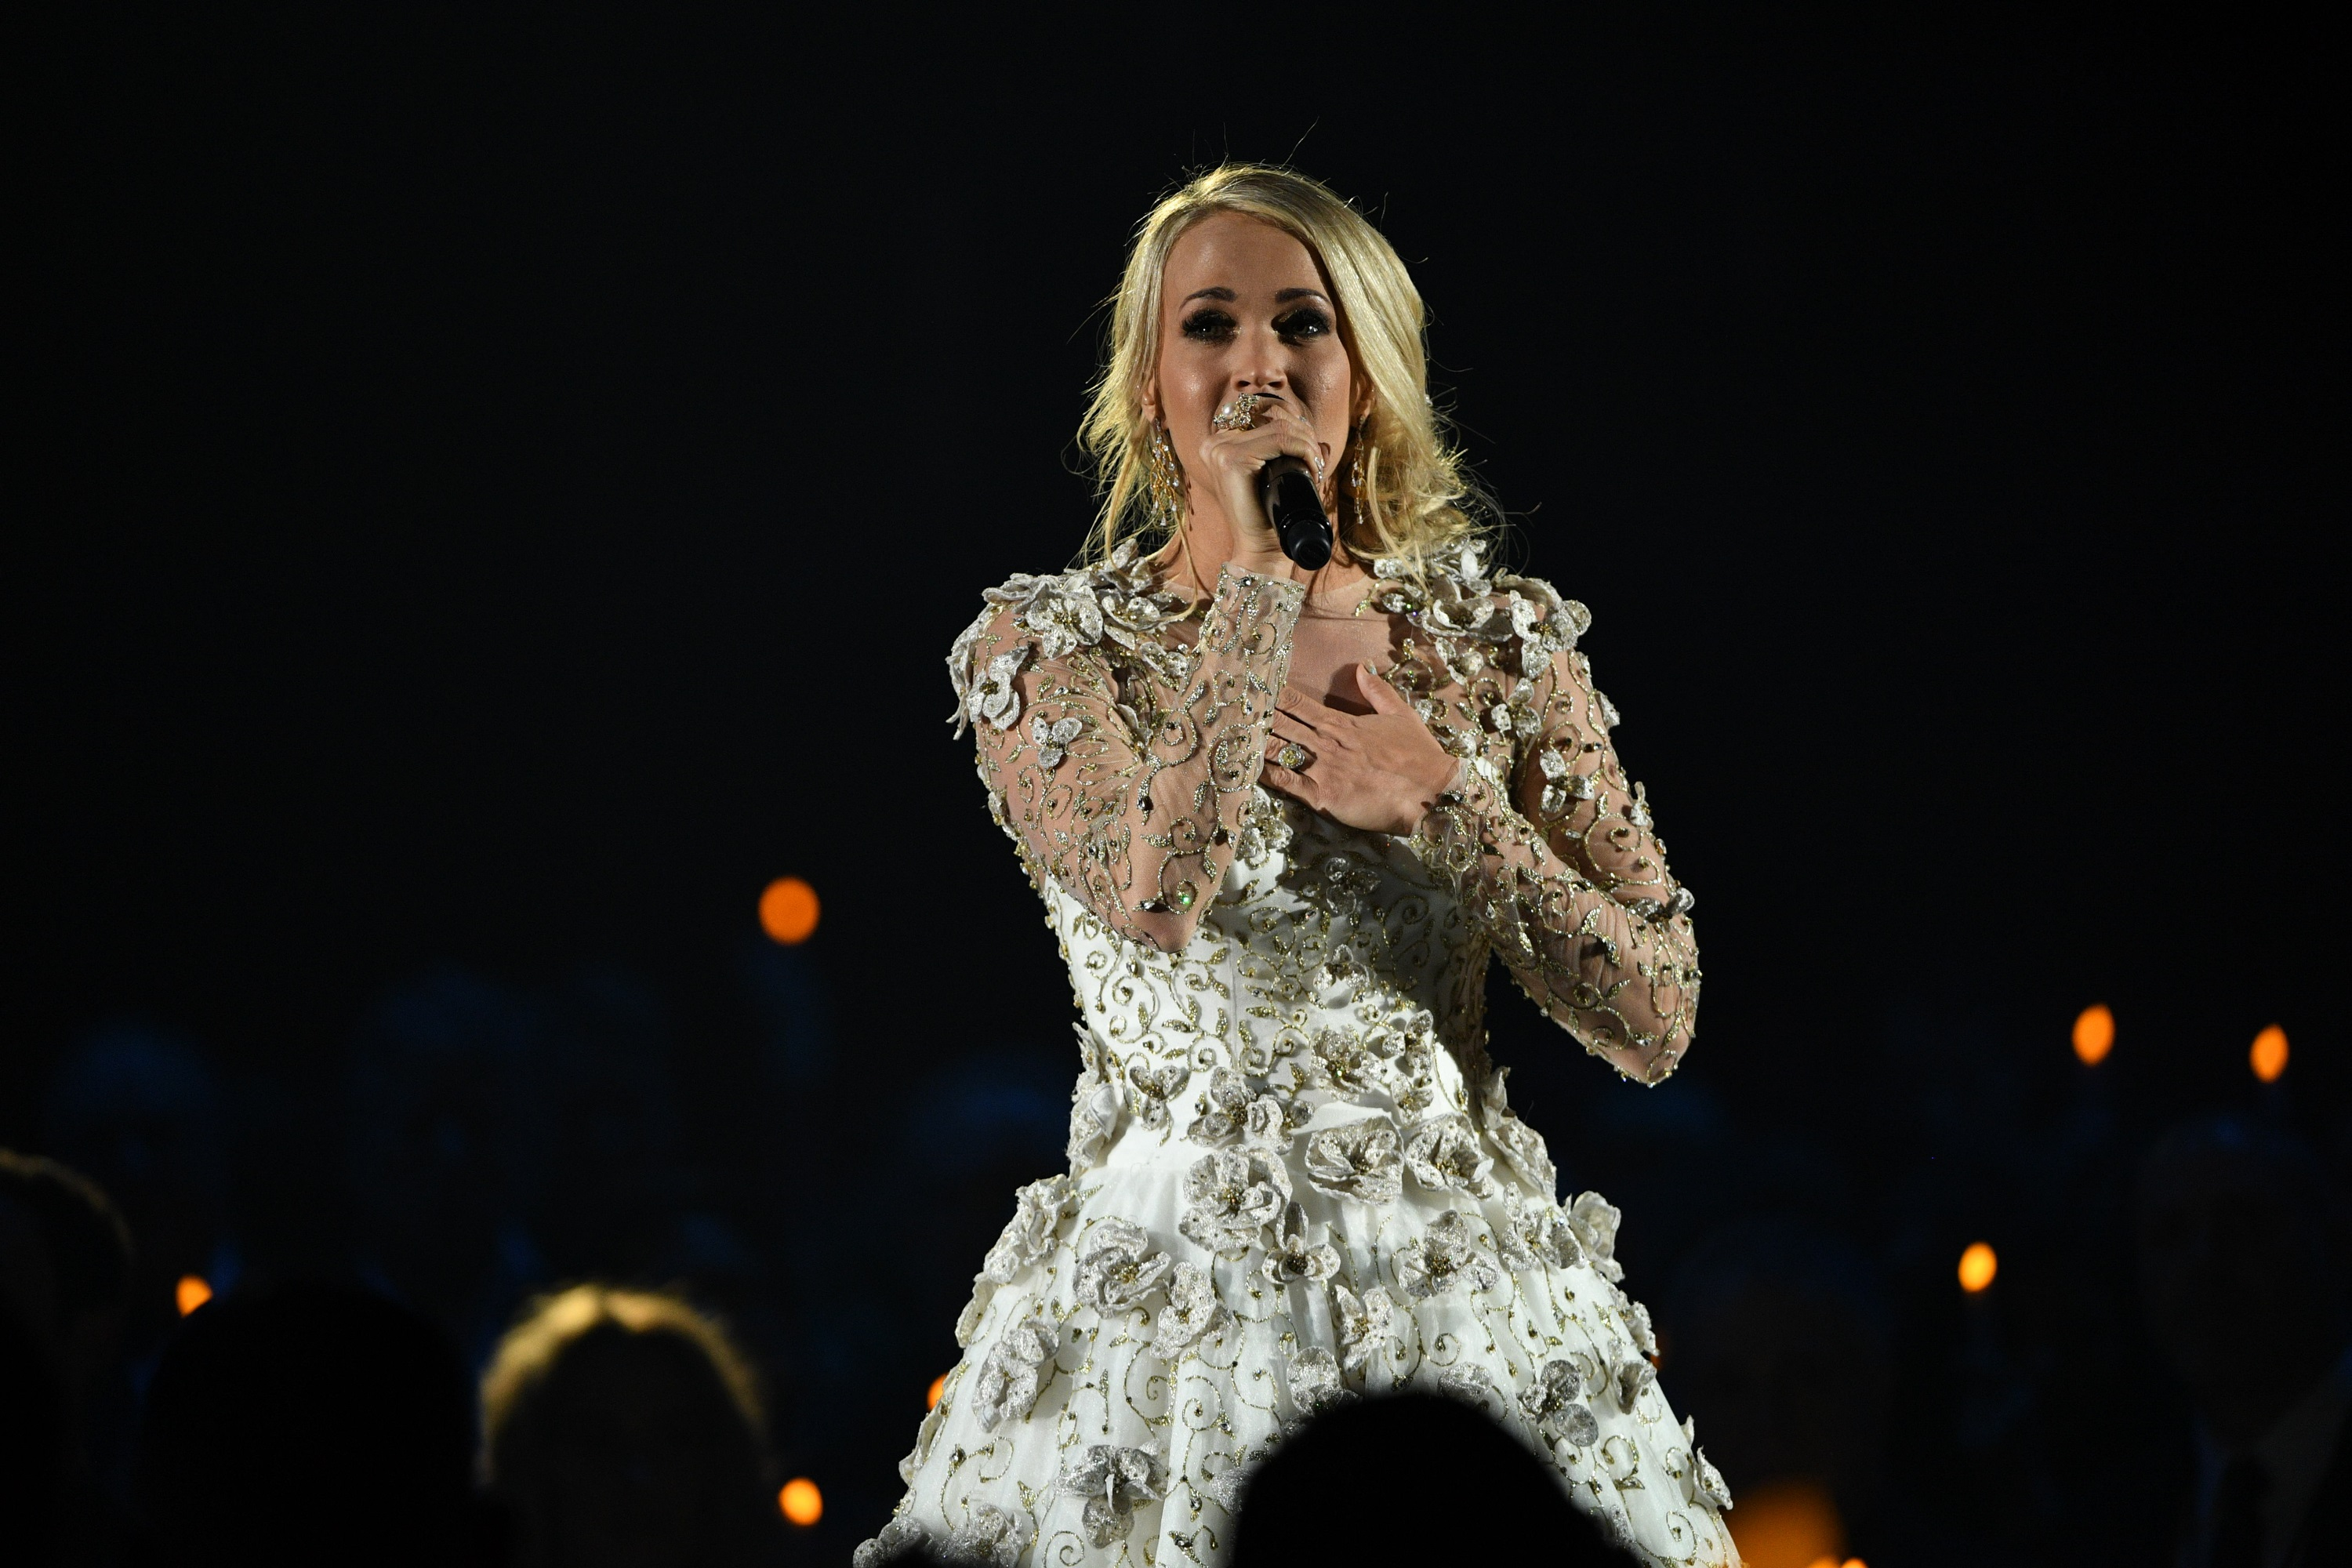 Carrie Underwood breaks wrist and cancels concert